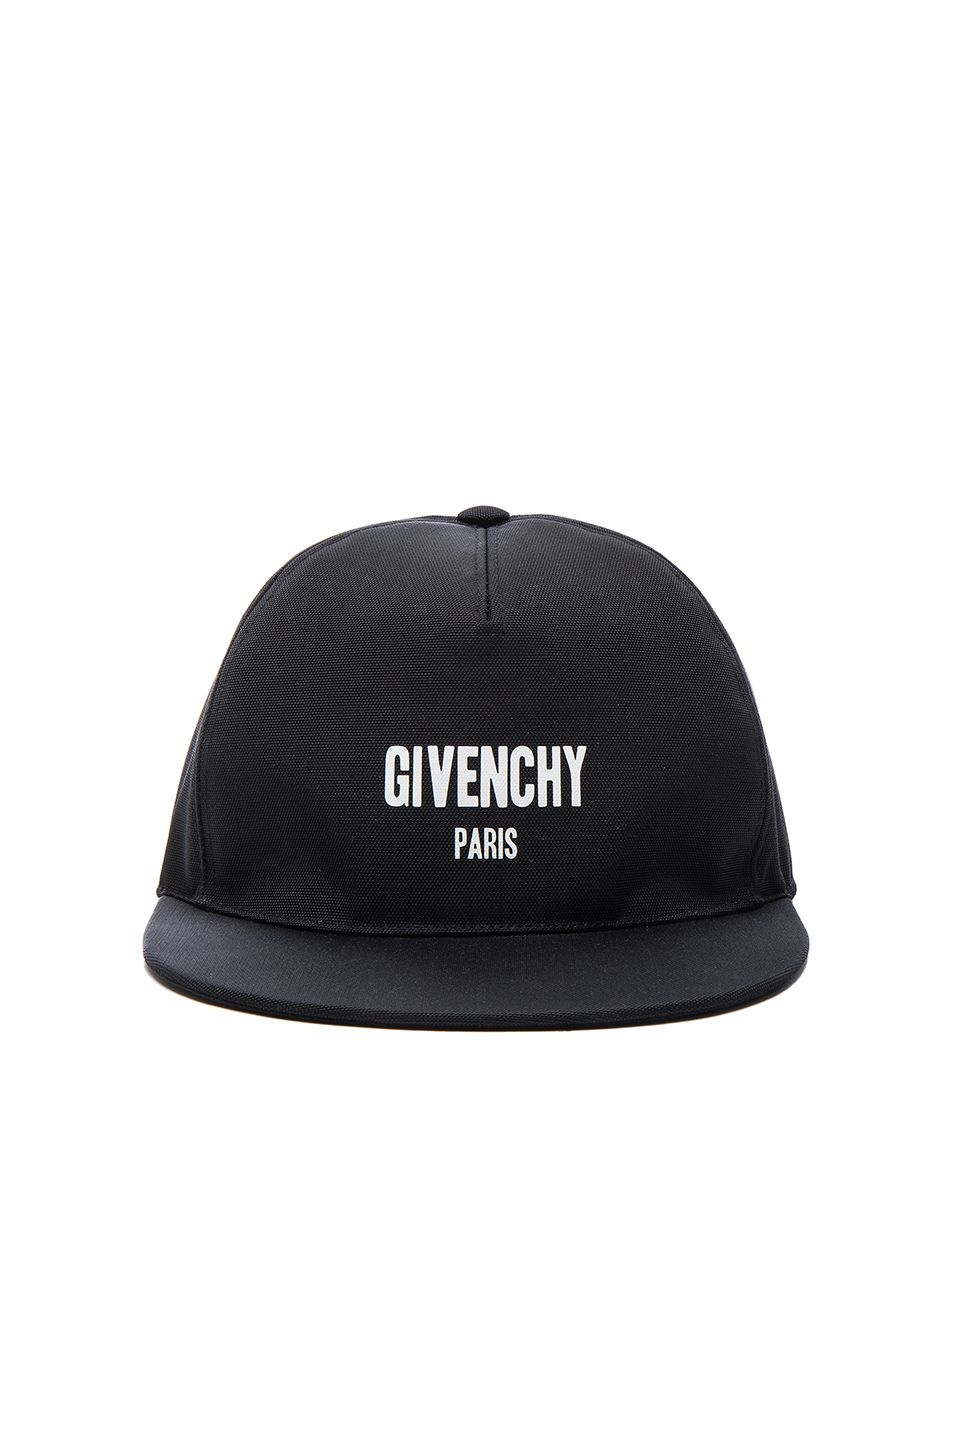 1e5d9b47a9d Image 1 of GIVENCHY Logo Cap in Black